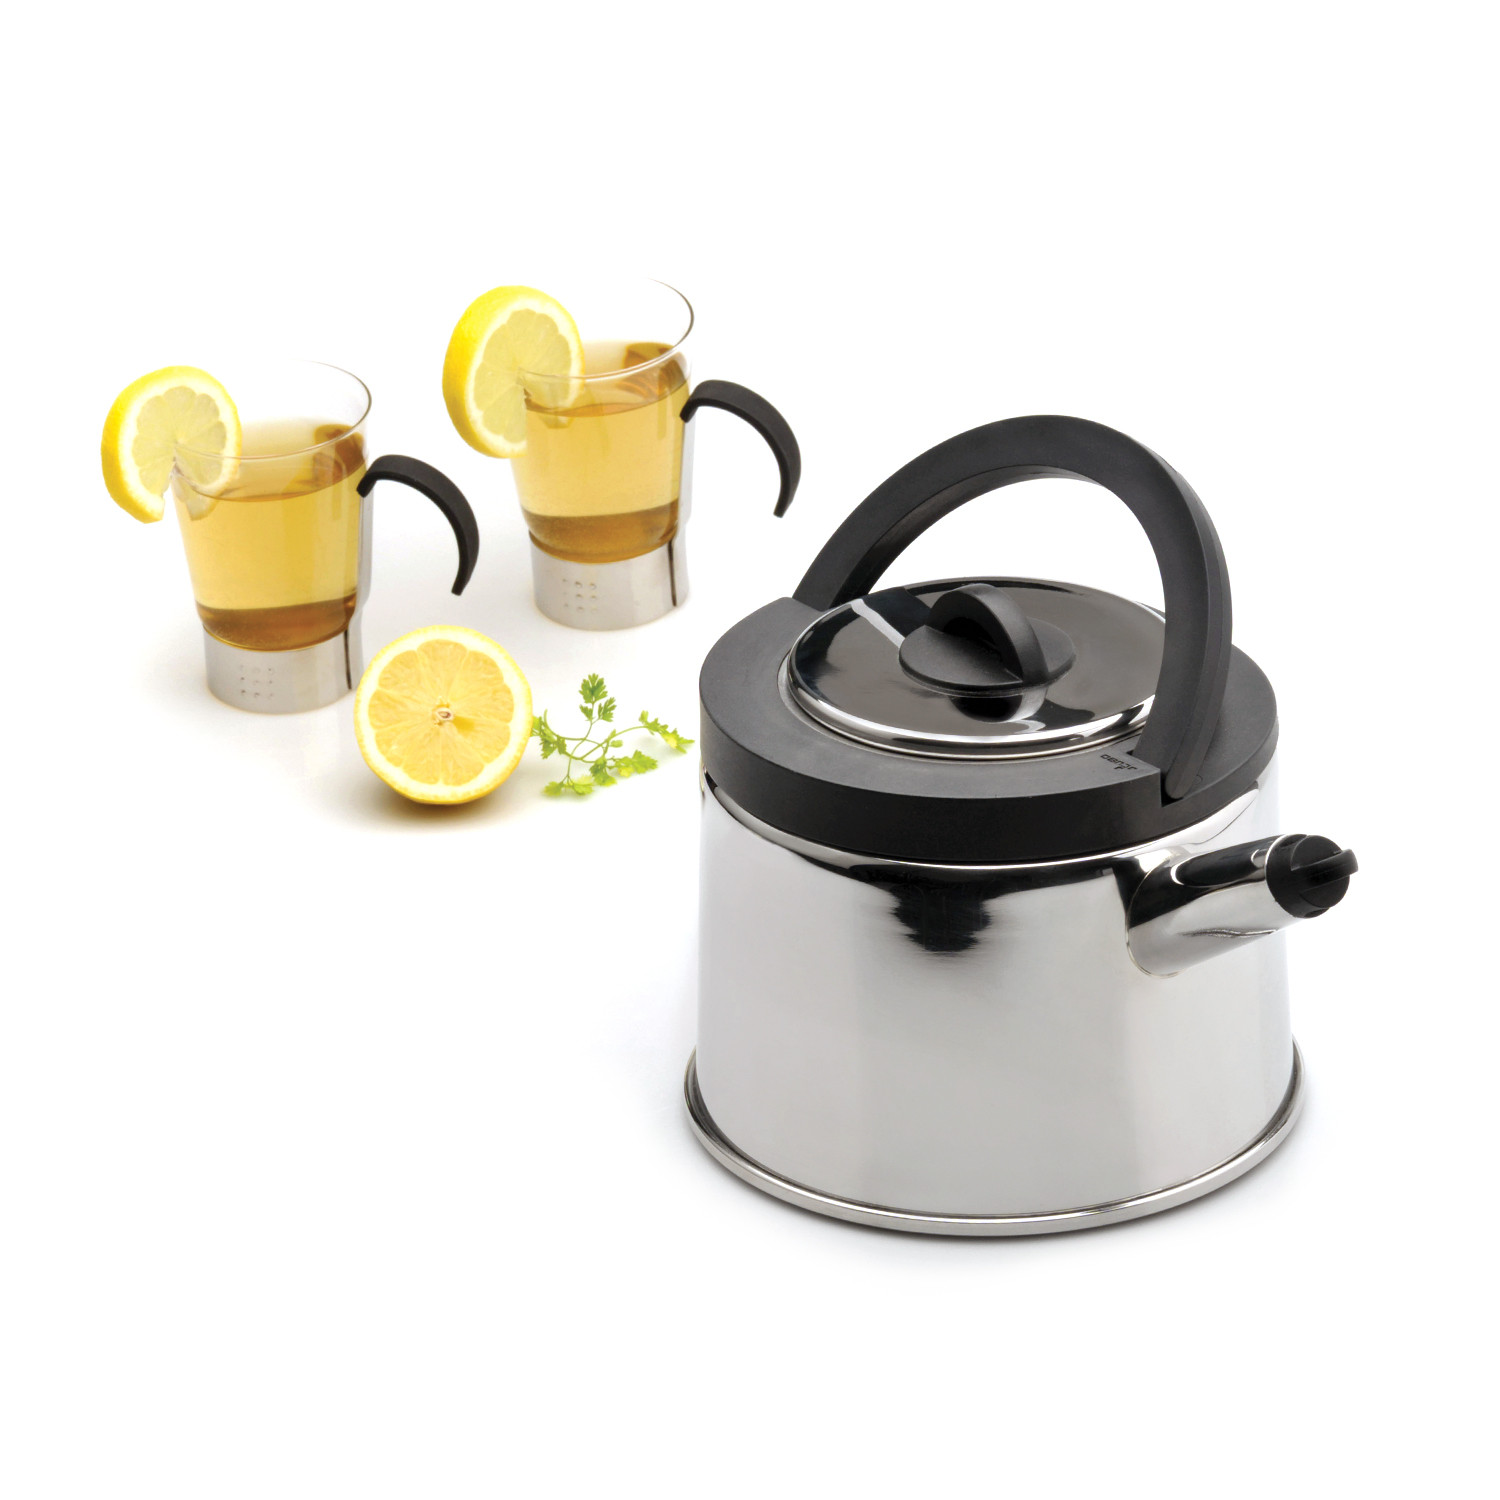 cubo whistling tea kettle  berghoff  touch of modern - cubo whistling tea kettle